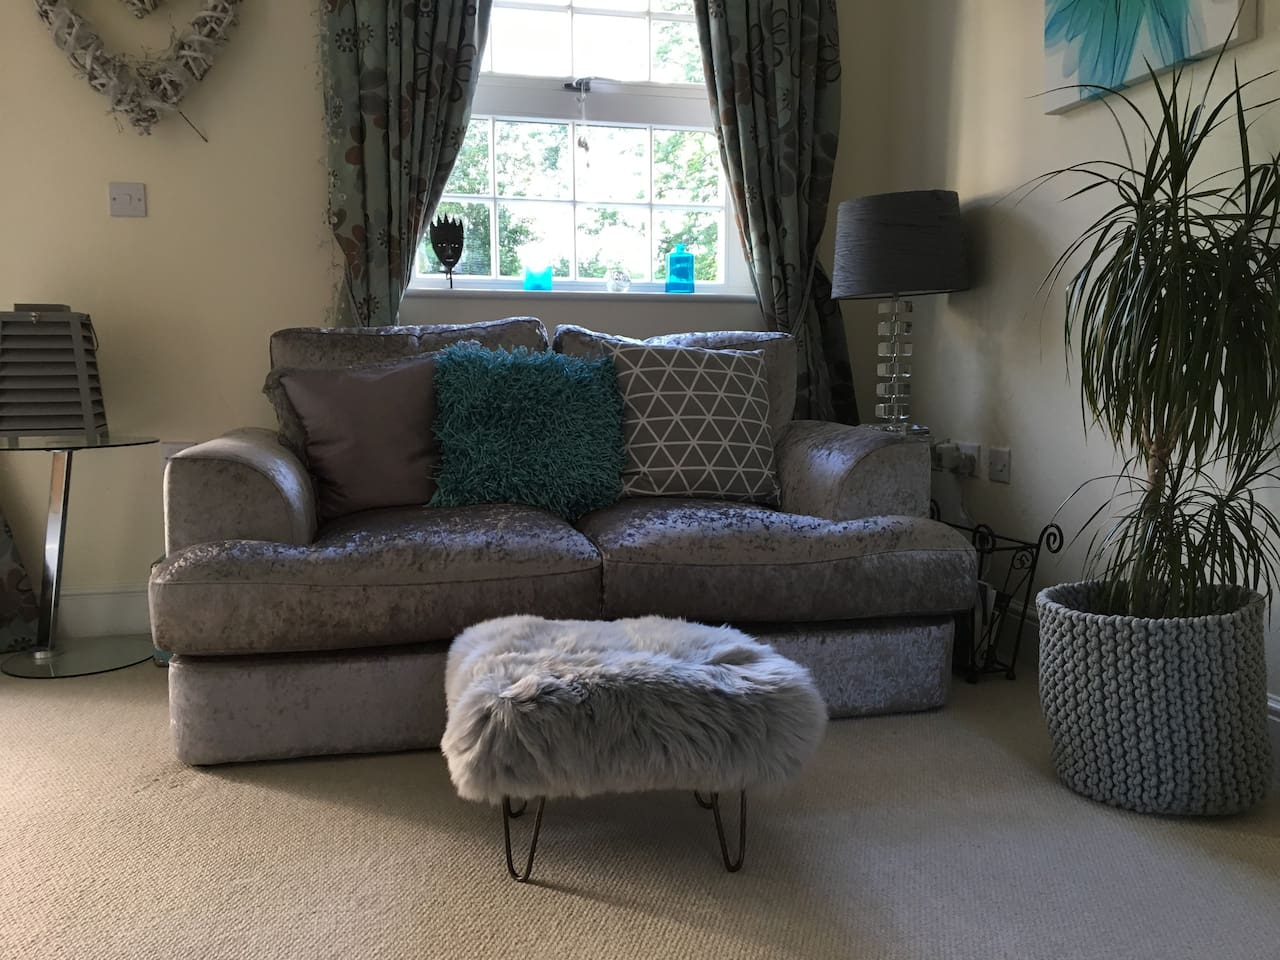 Living Room with Two Quirky Comfortable Sofas and Unique Contemporary Silver Sheepskin Baa Footstools to Relax and Put your Feet up